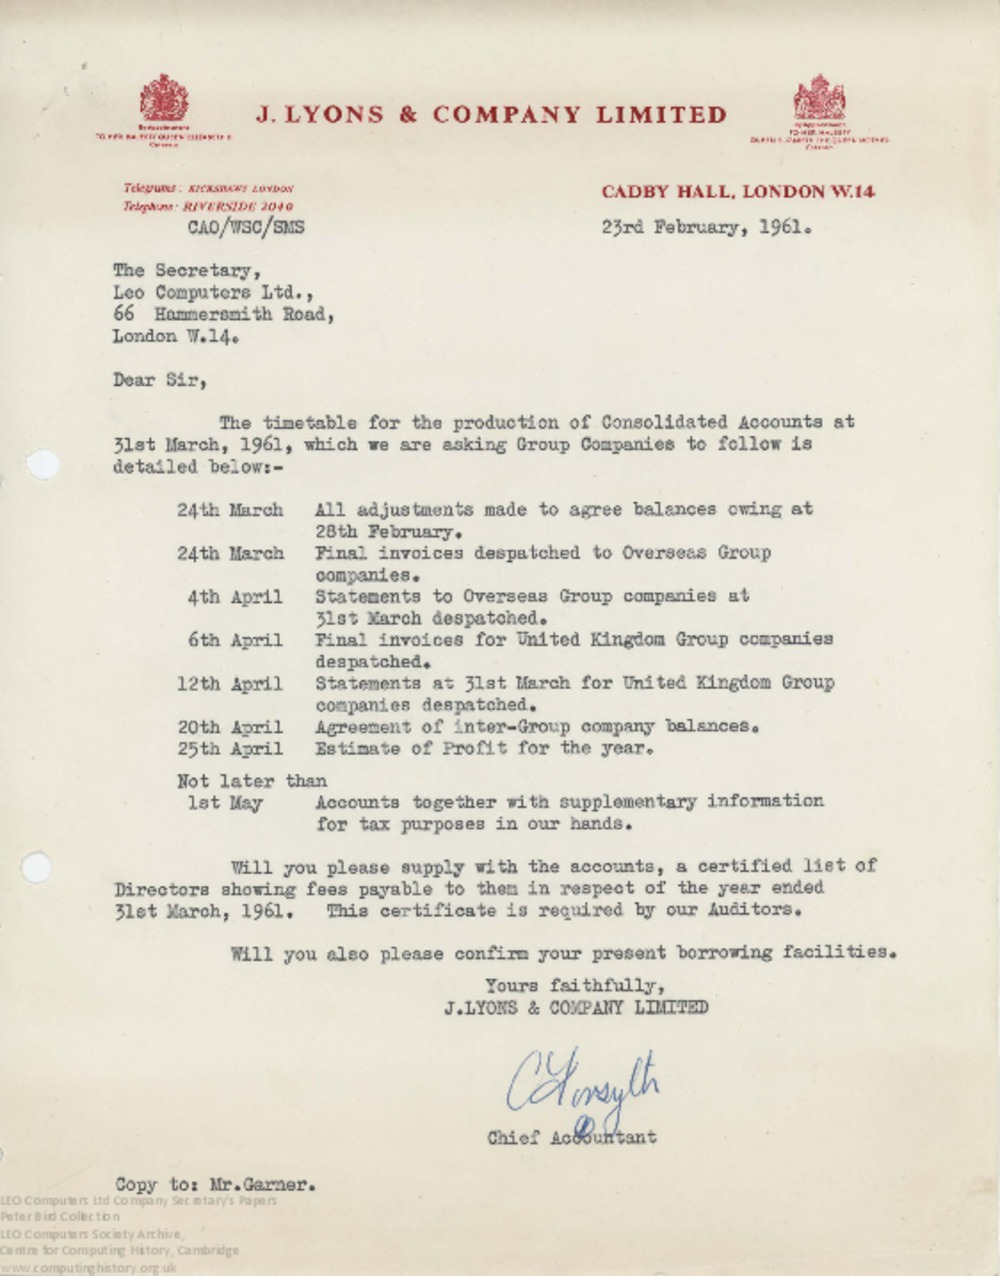 Article: 62849 Timetable for Consolidated Accounts, 23rd Feb 1961